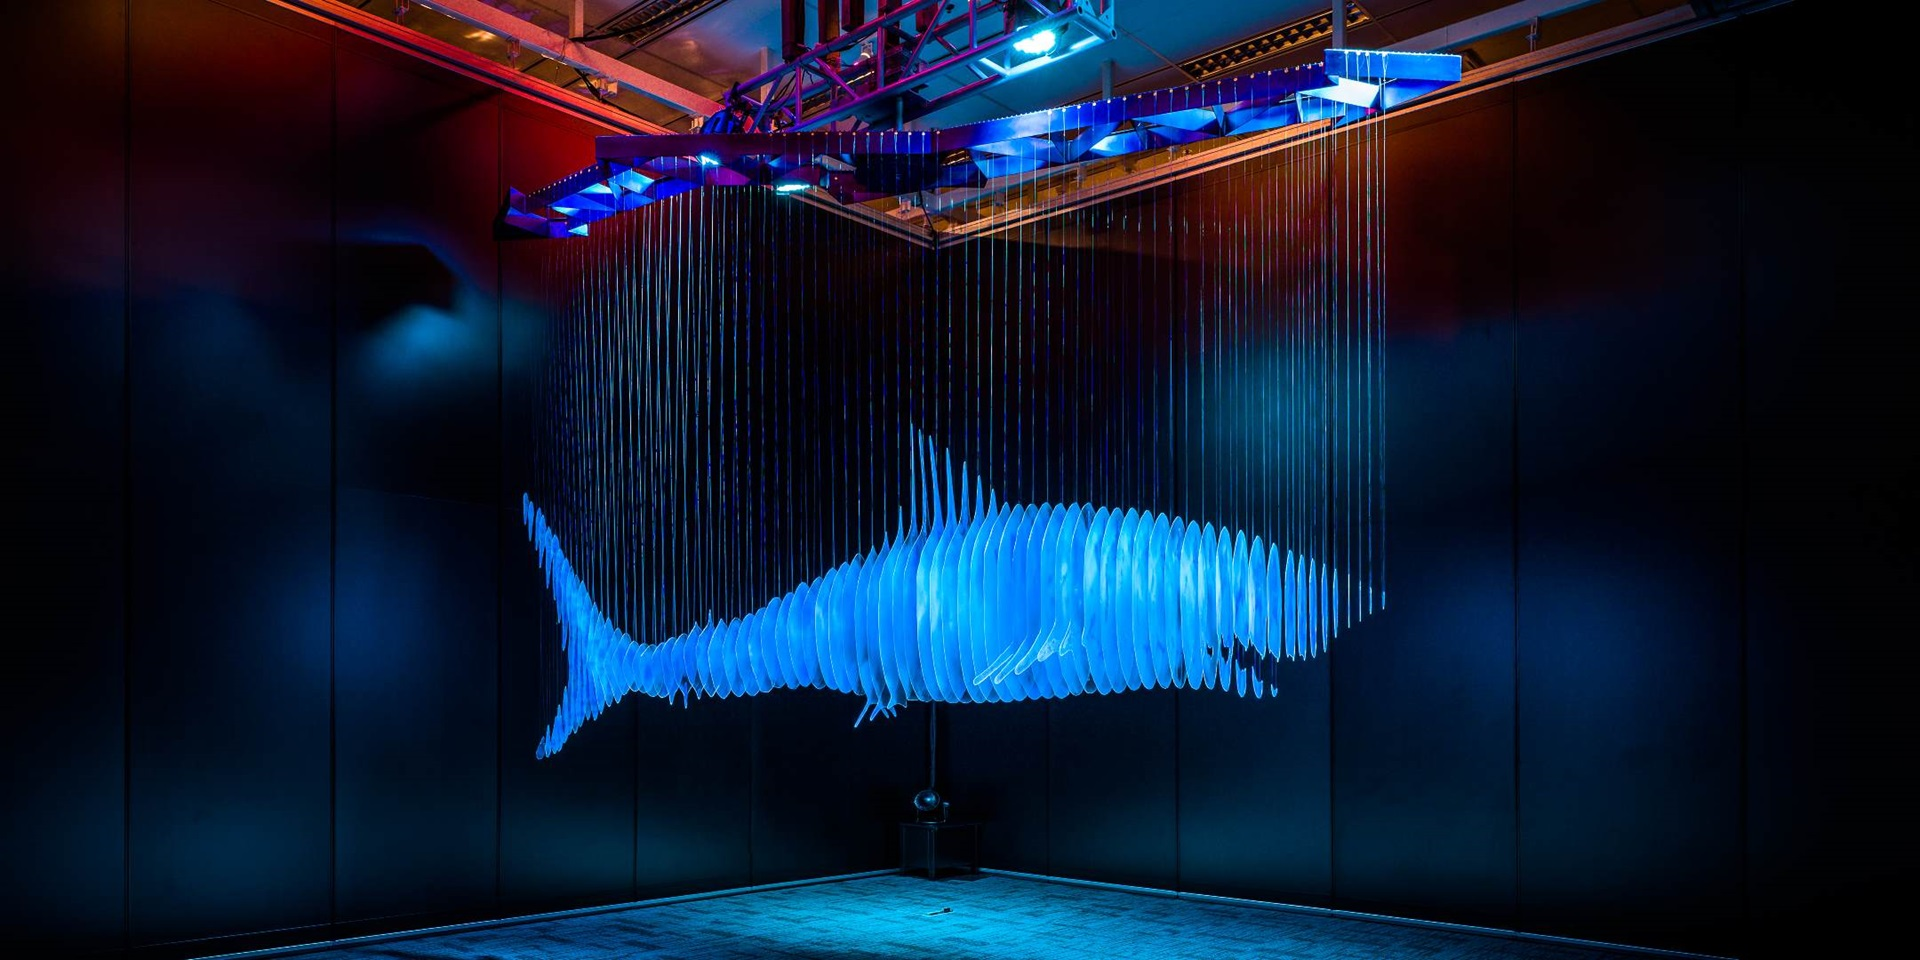 Sharks and Humanity| Image: LI JIWEI, Don't Copy II, kinetic work, dimensions variable. Plastic, propylene, stainless steel, dynamo and lighting 2015